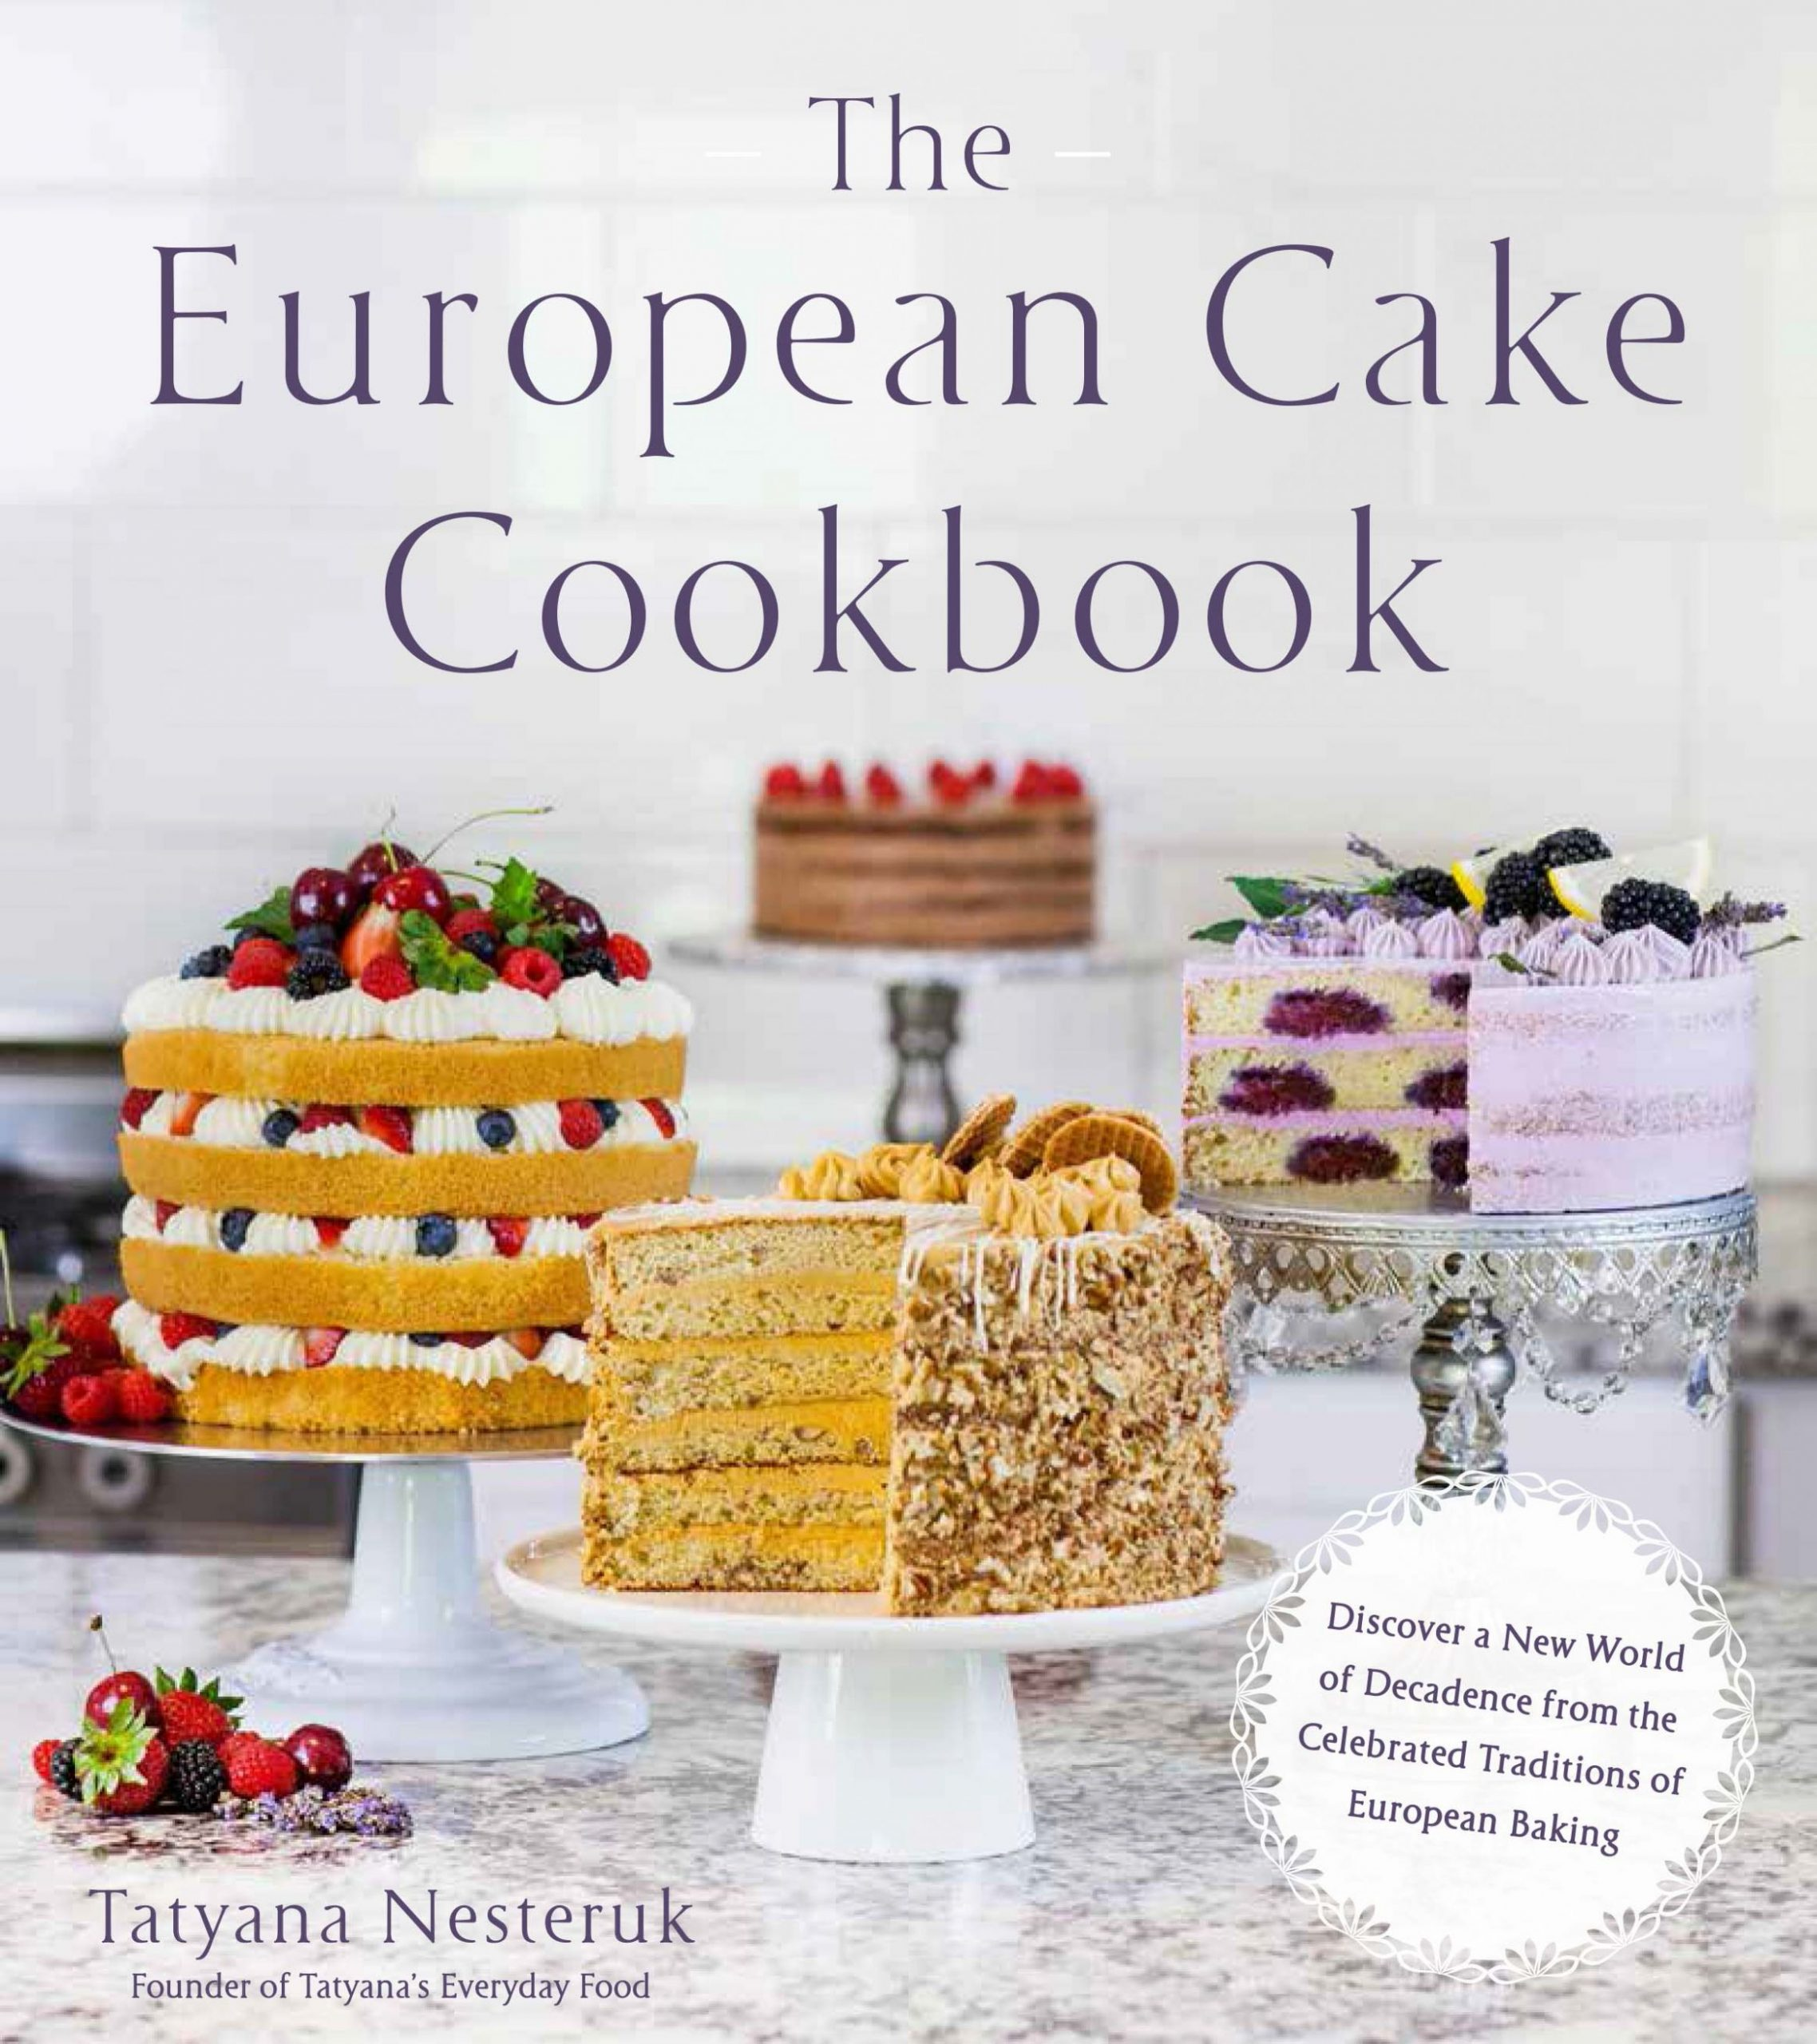 European Cake Cookbook - Dessert Recipes Pdf Free Download